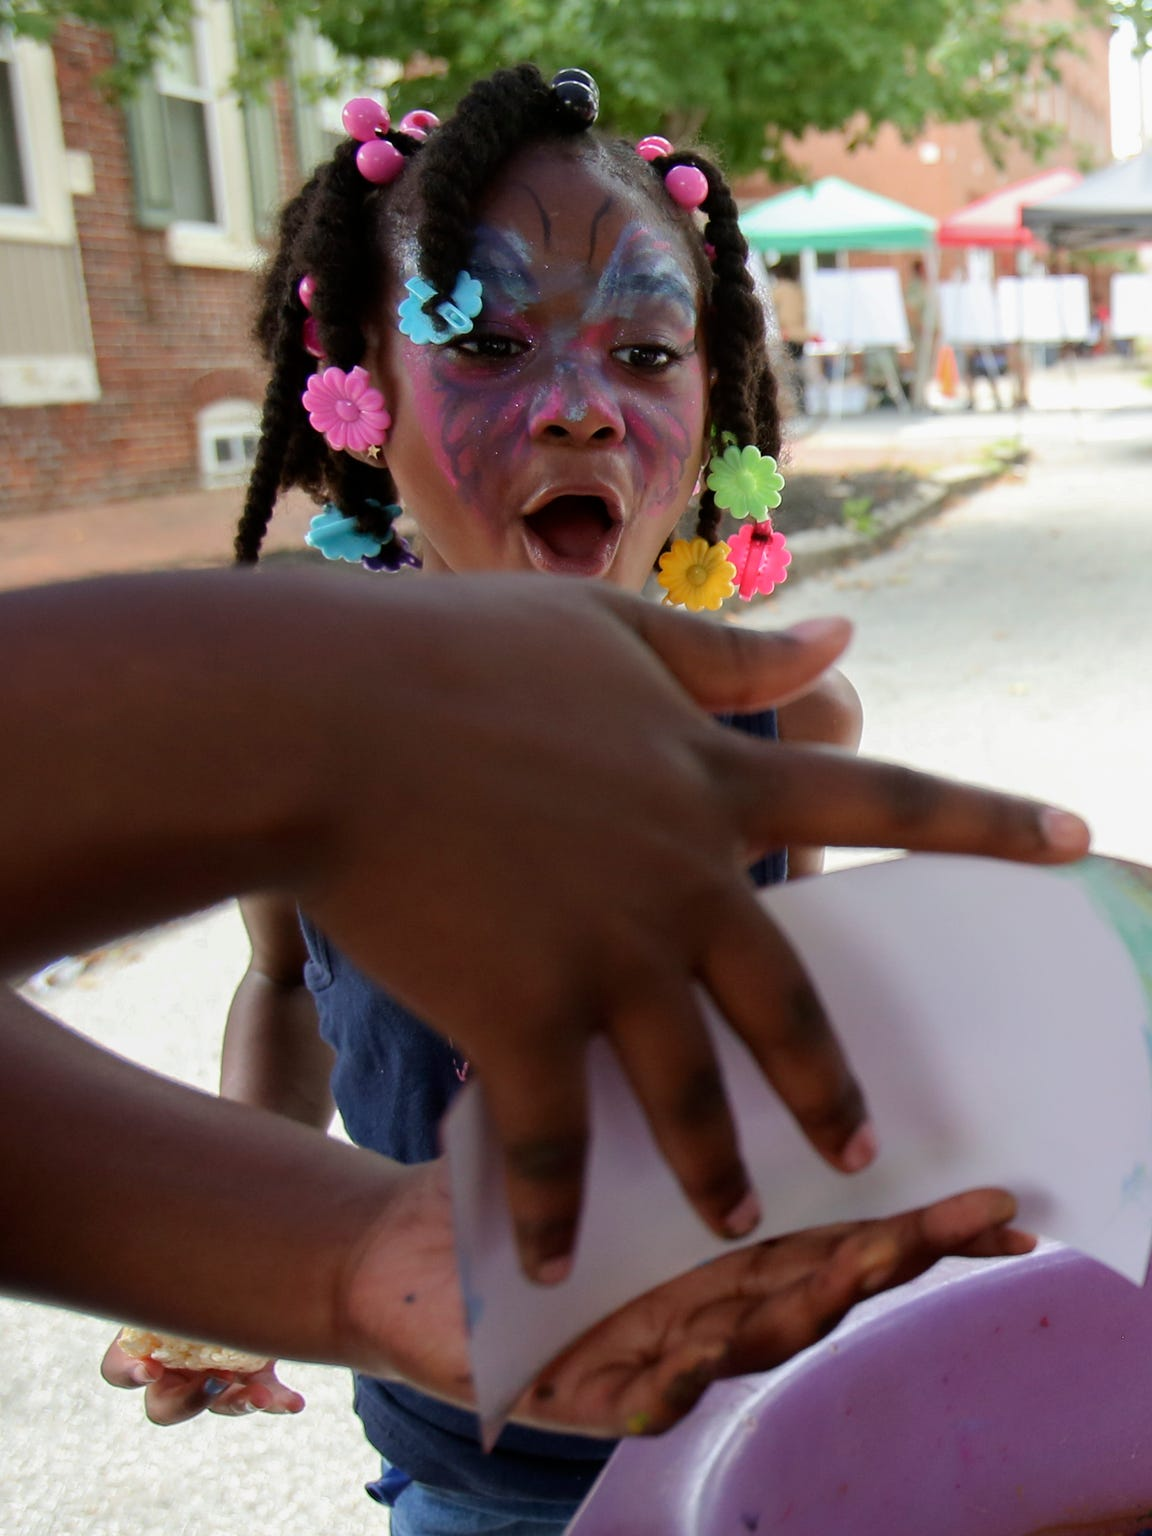 Seanni Pipkins, 6, reacts to her spin art as she is shown the final result she created during Southbridge Community Weekend events in July 2017.